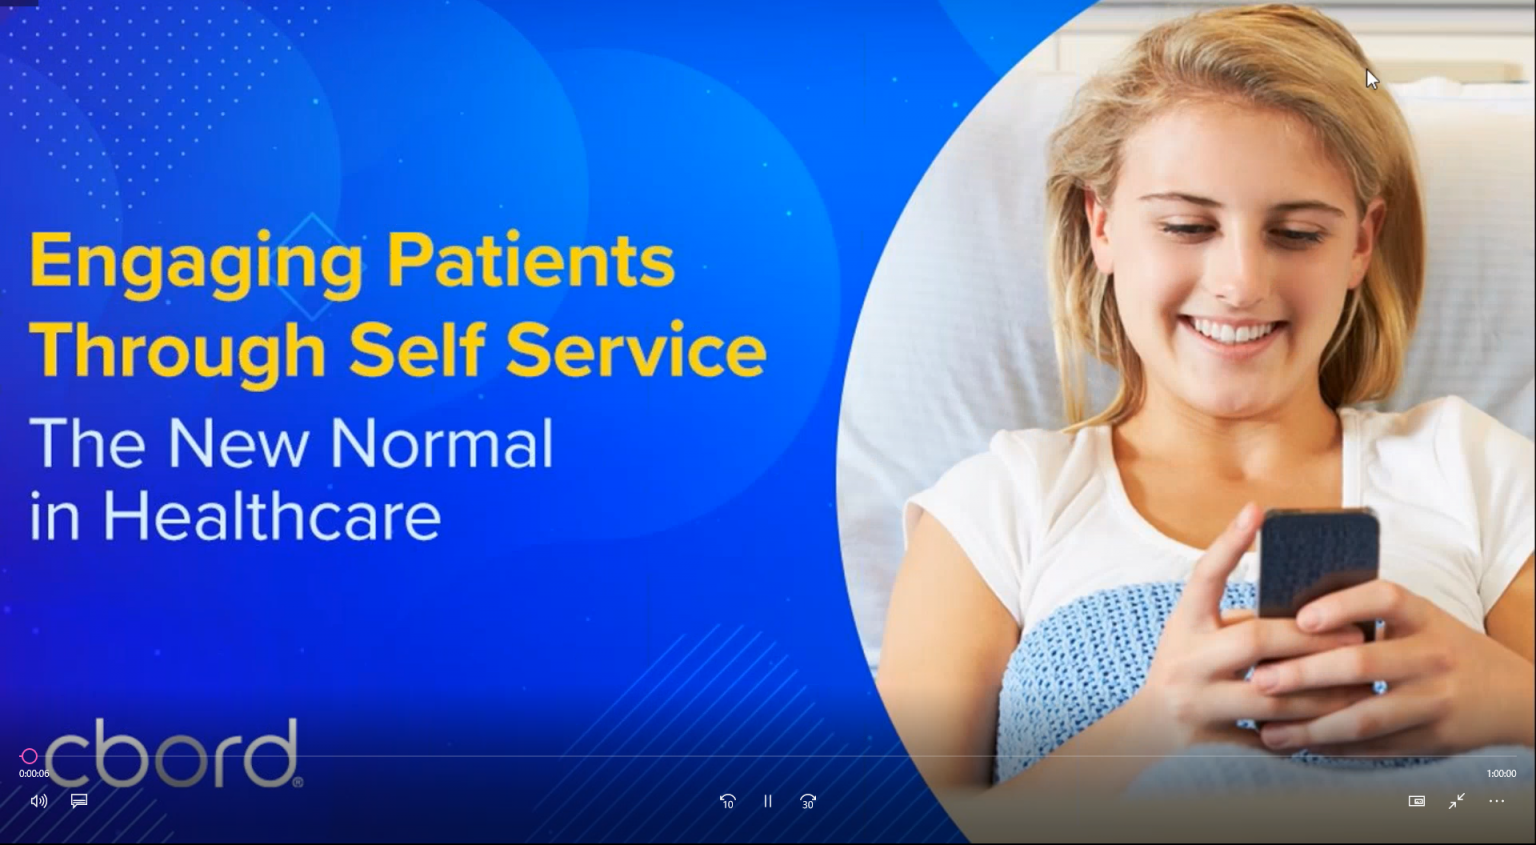 Engaging Patients Through Self-Service